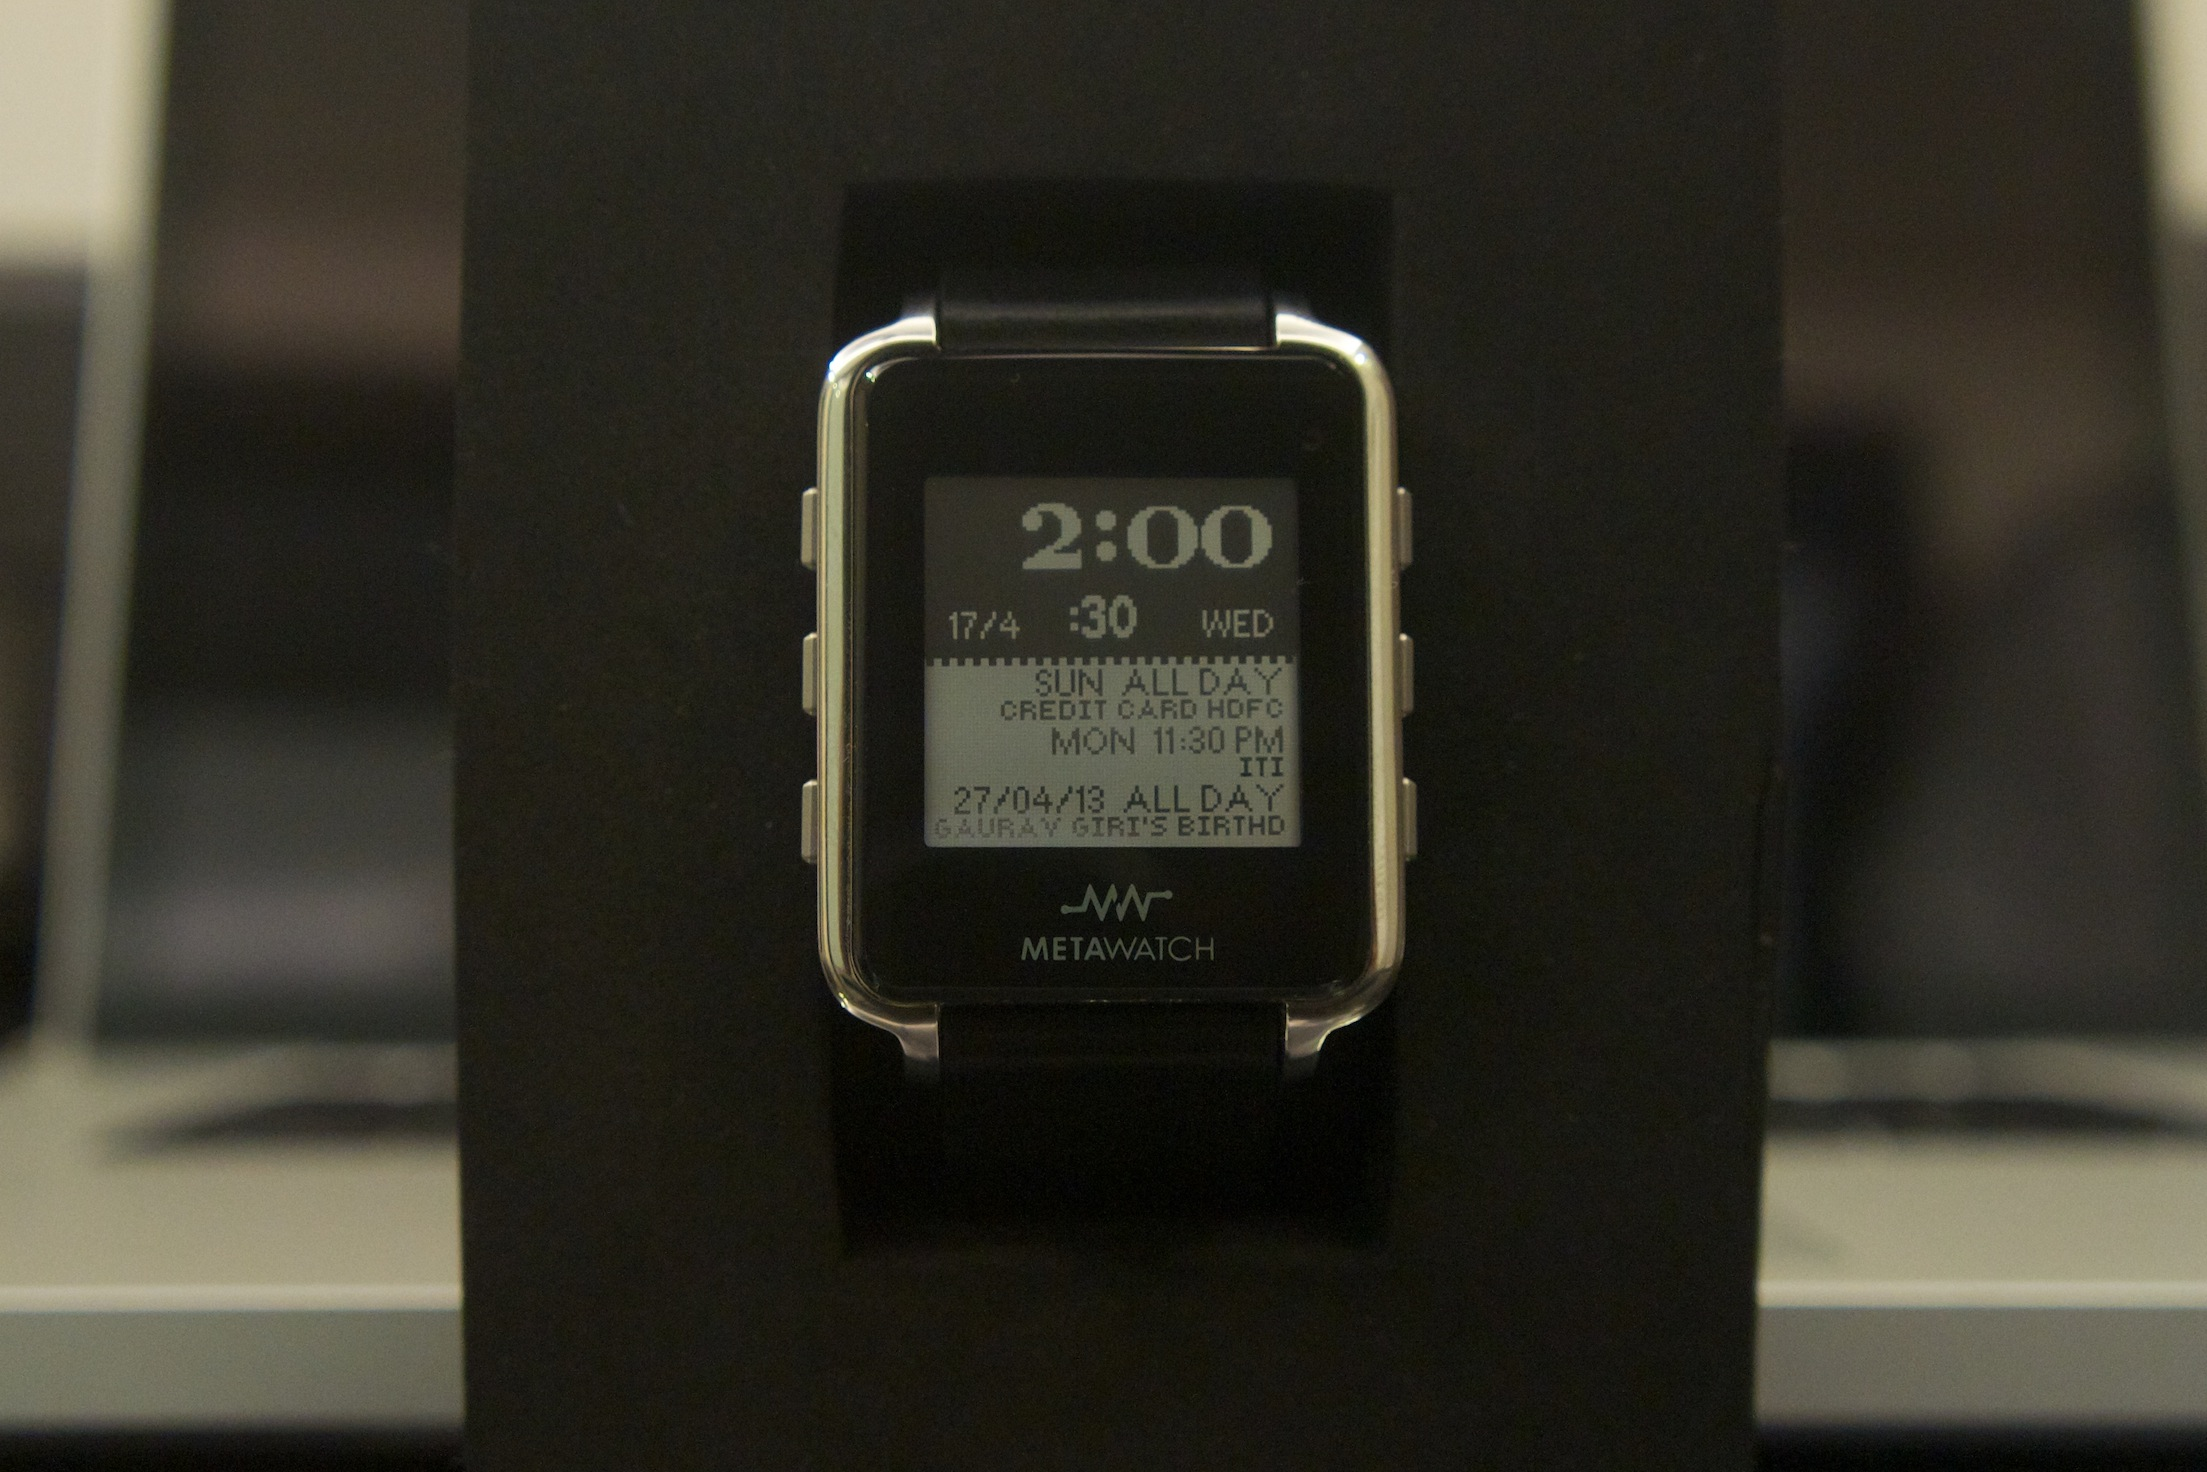 MetaWatch Watchface 2